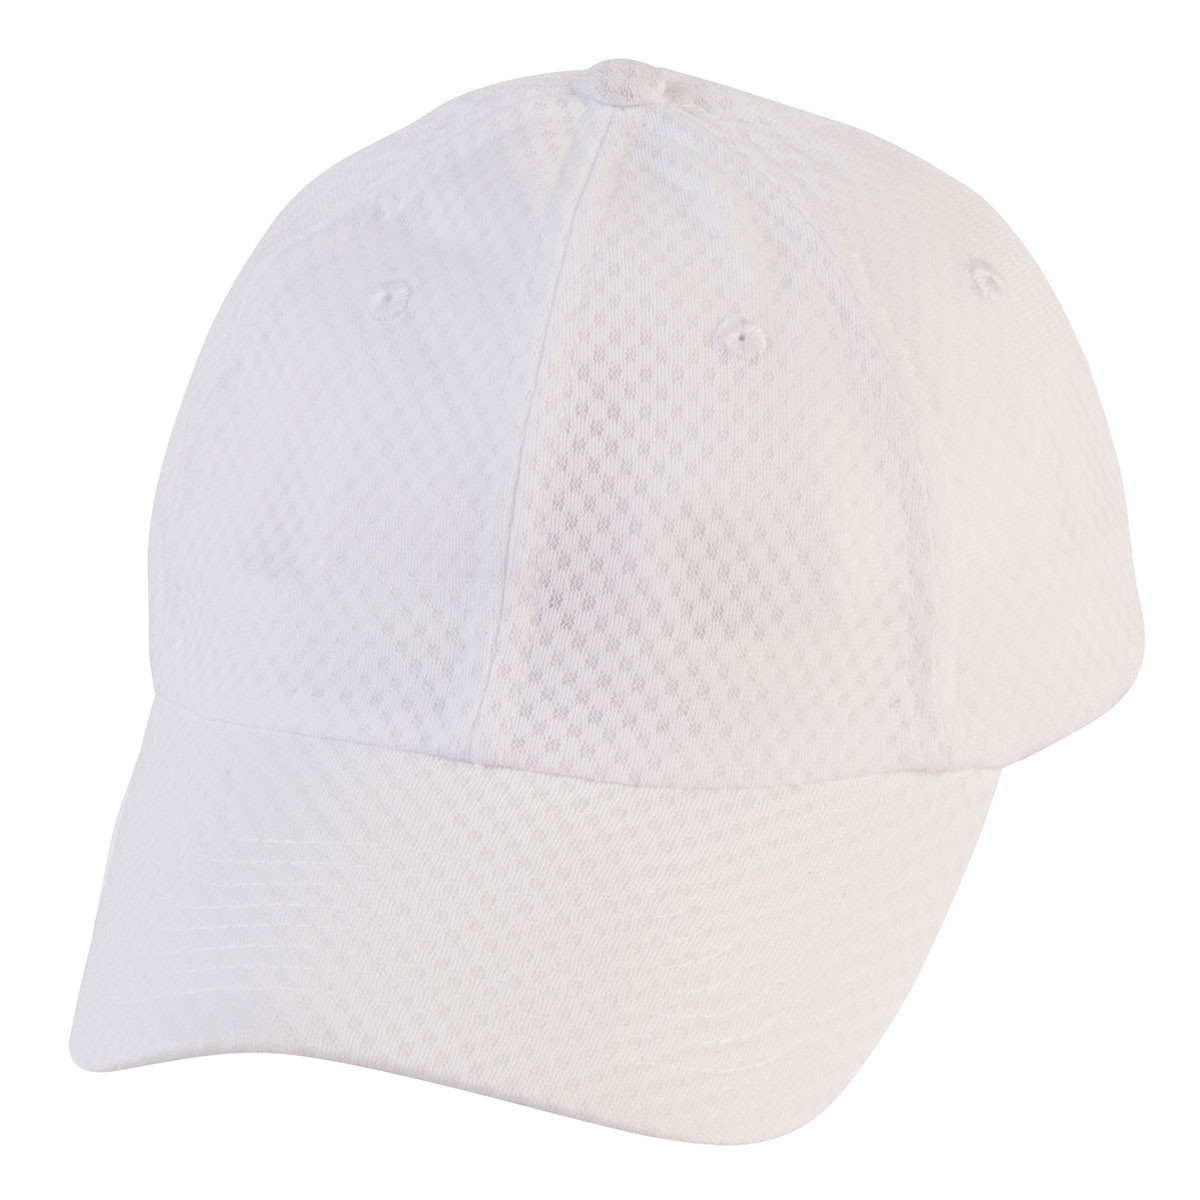 Relay Athletic Mesh Baseball Cap Sports Cap Online